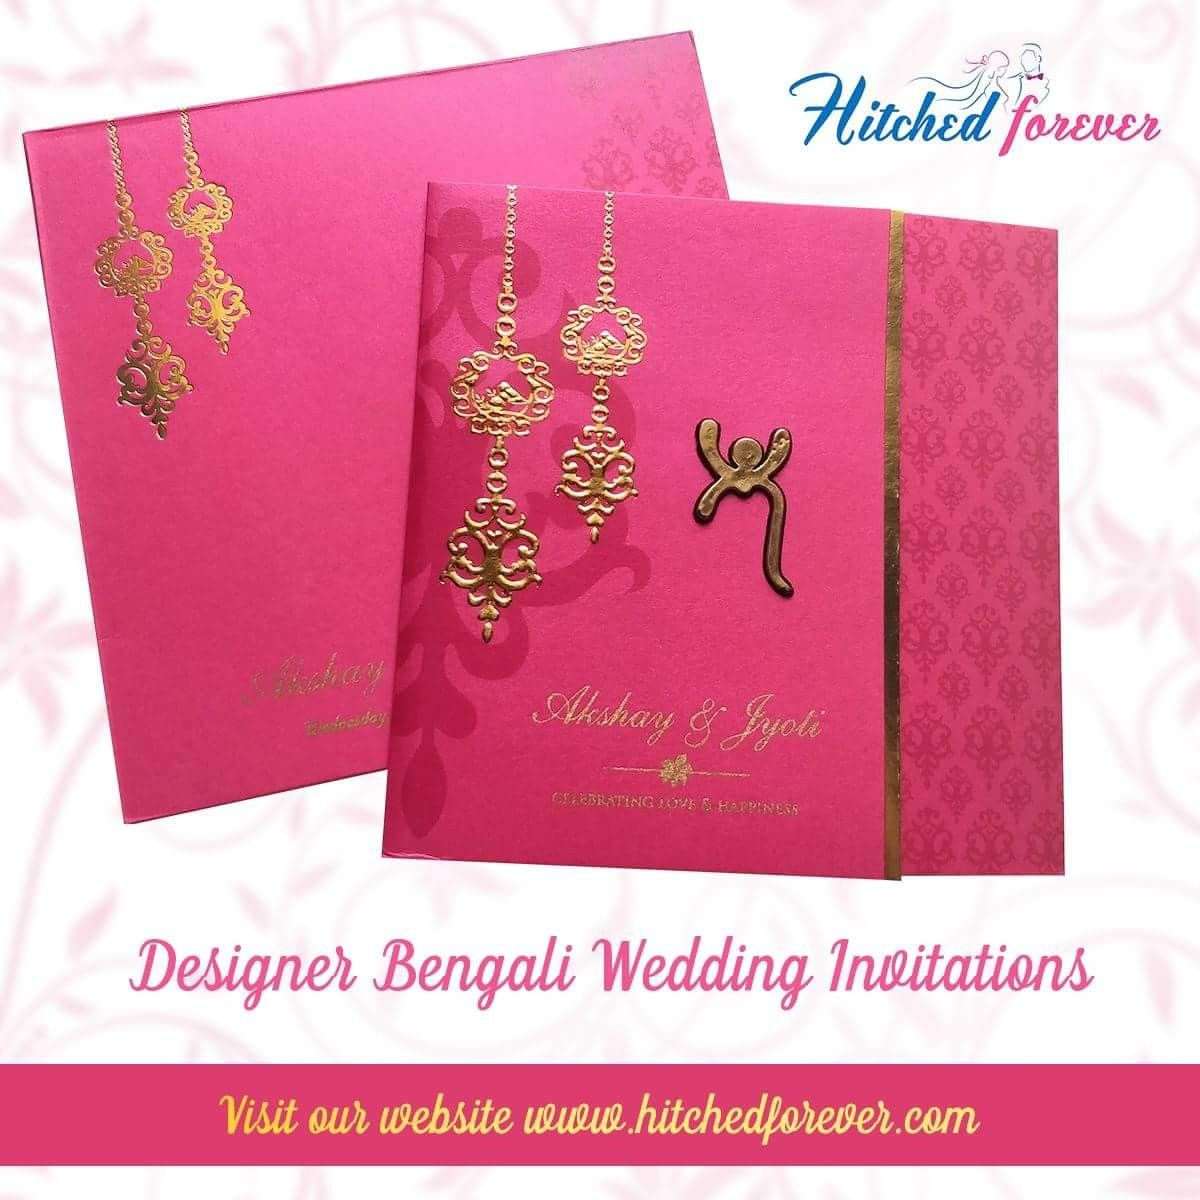 bengali wedding invitations are essentially in shades of